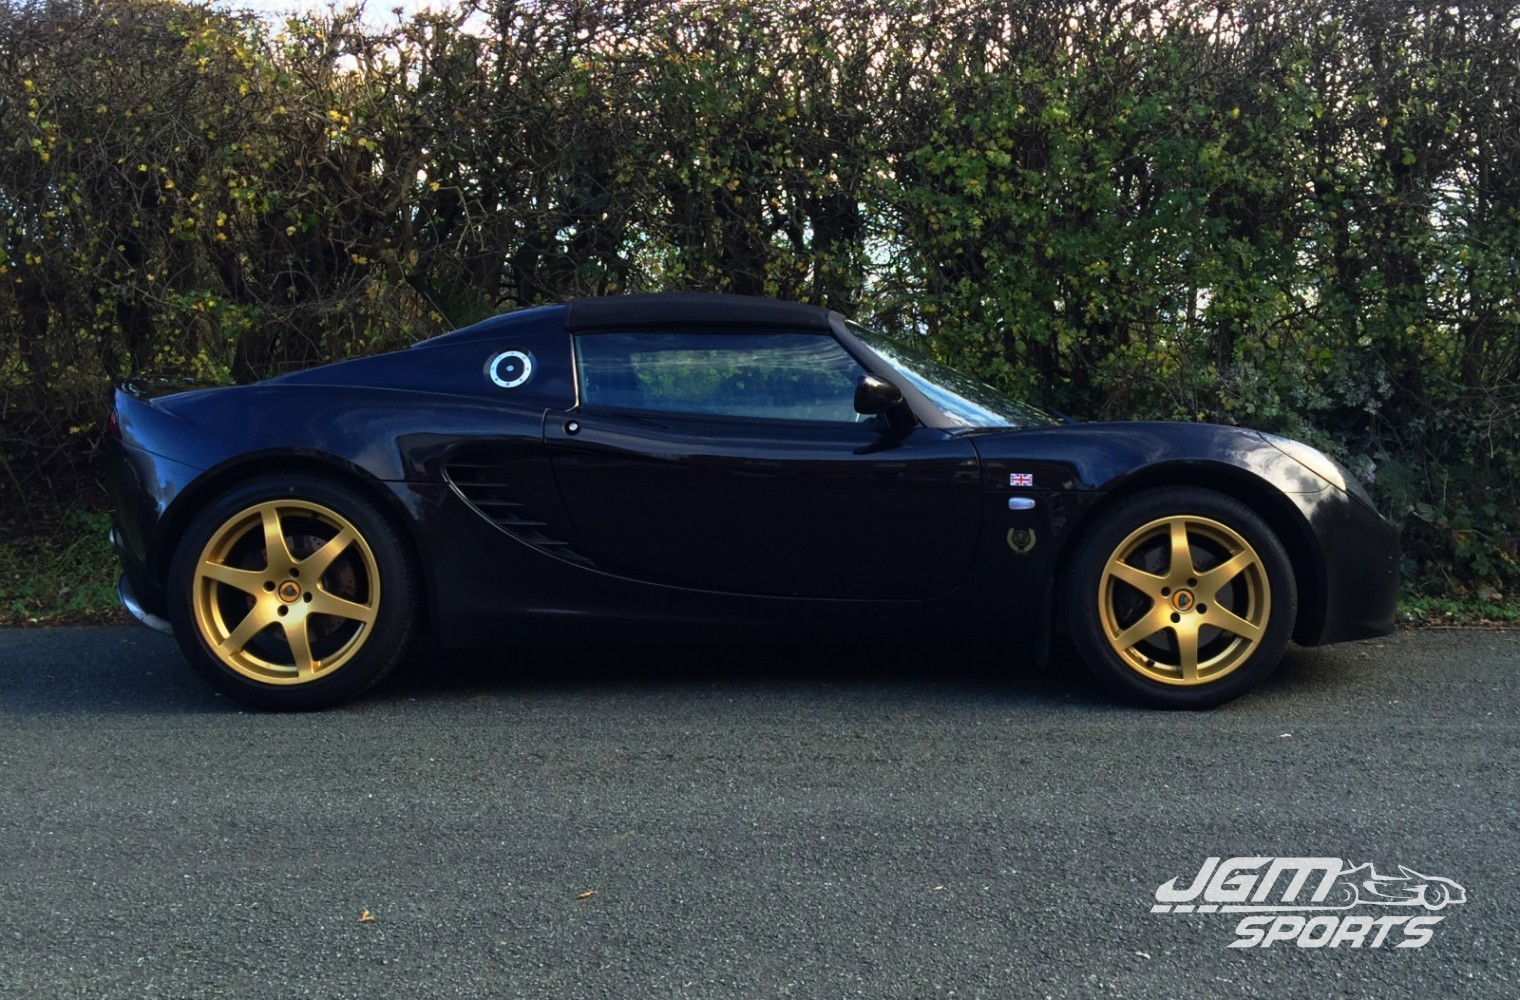 http://www.jgmsports.co.uk/wp-content/uploads/2003-S2-LOTUS-ELISE-TYPE-72-LOOKS-WITH-LOW-MILLAGE-STUNNING-CONDITION-1520x1000.jpg